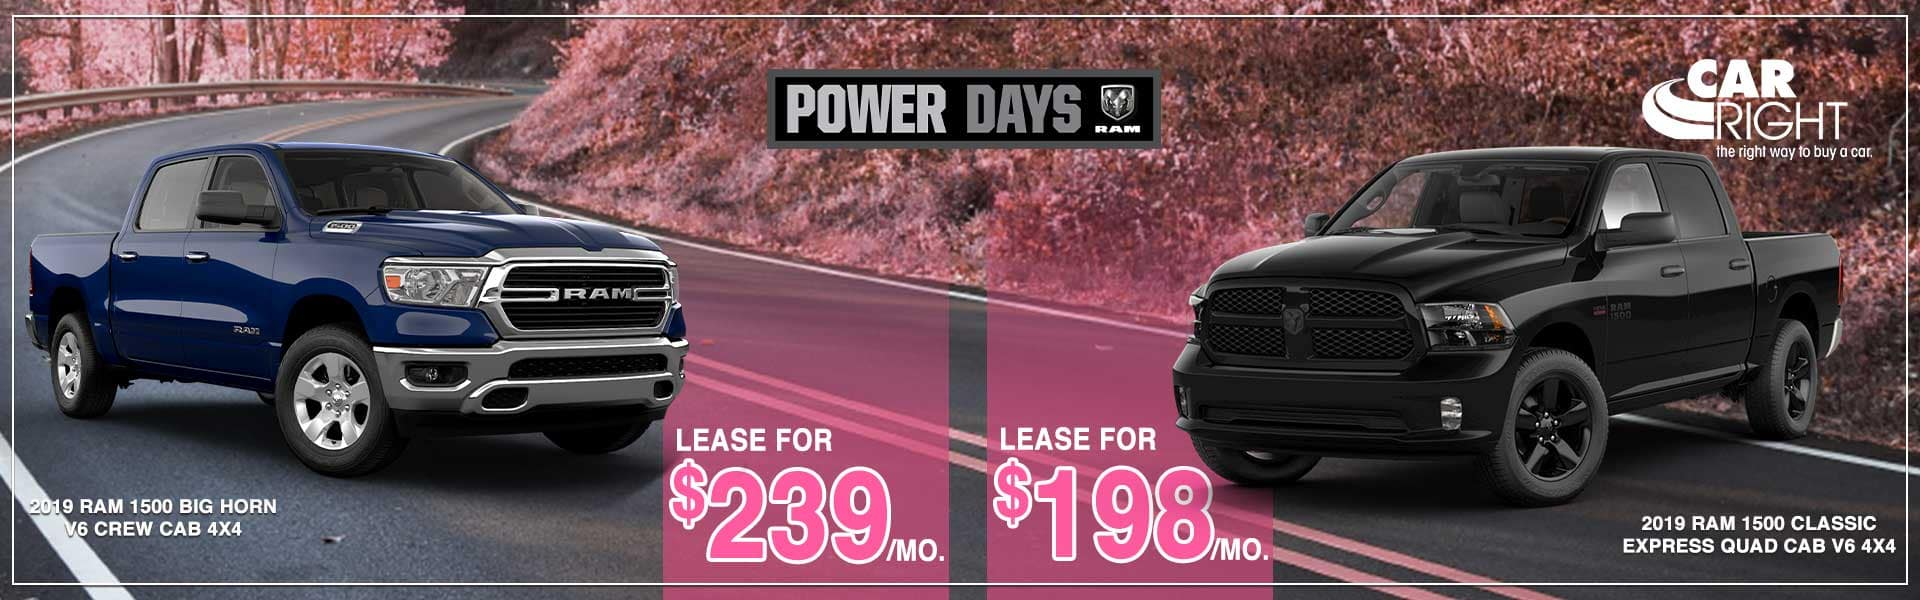 diehl auto Dodge power dollars jeep adventure days ram power days dodge lease special ram lease special Chrysler lease special jeep lease special glimmer of hope breast cancer awareness cars for a cause carright moon township PA mopar